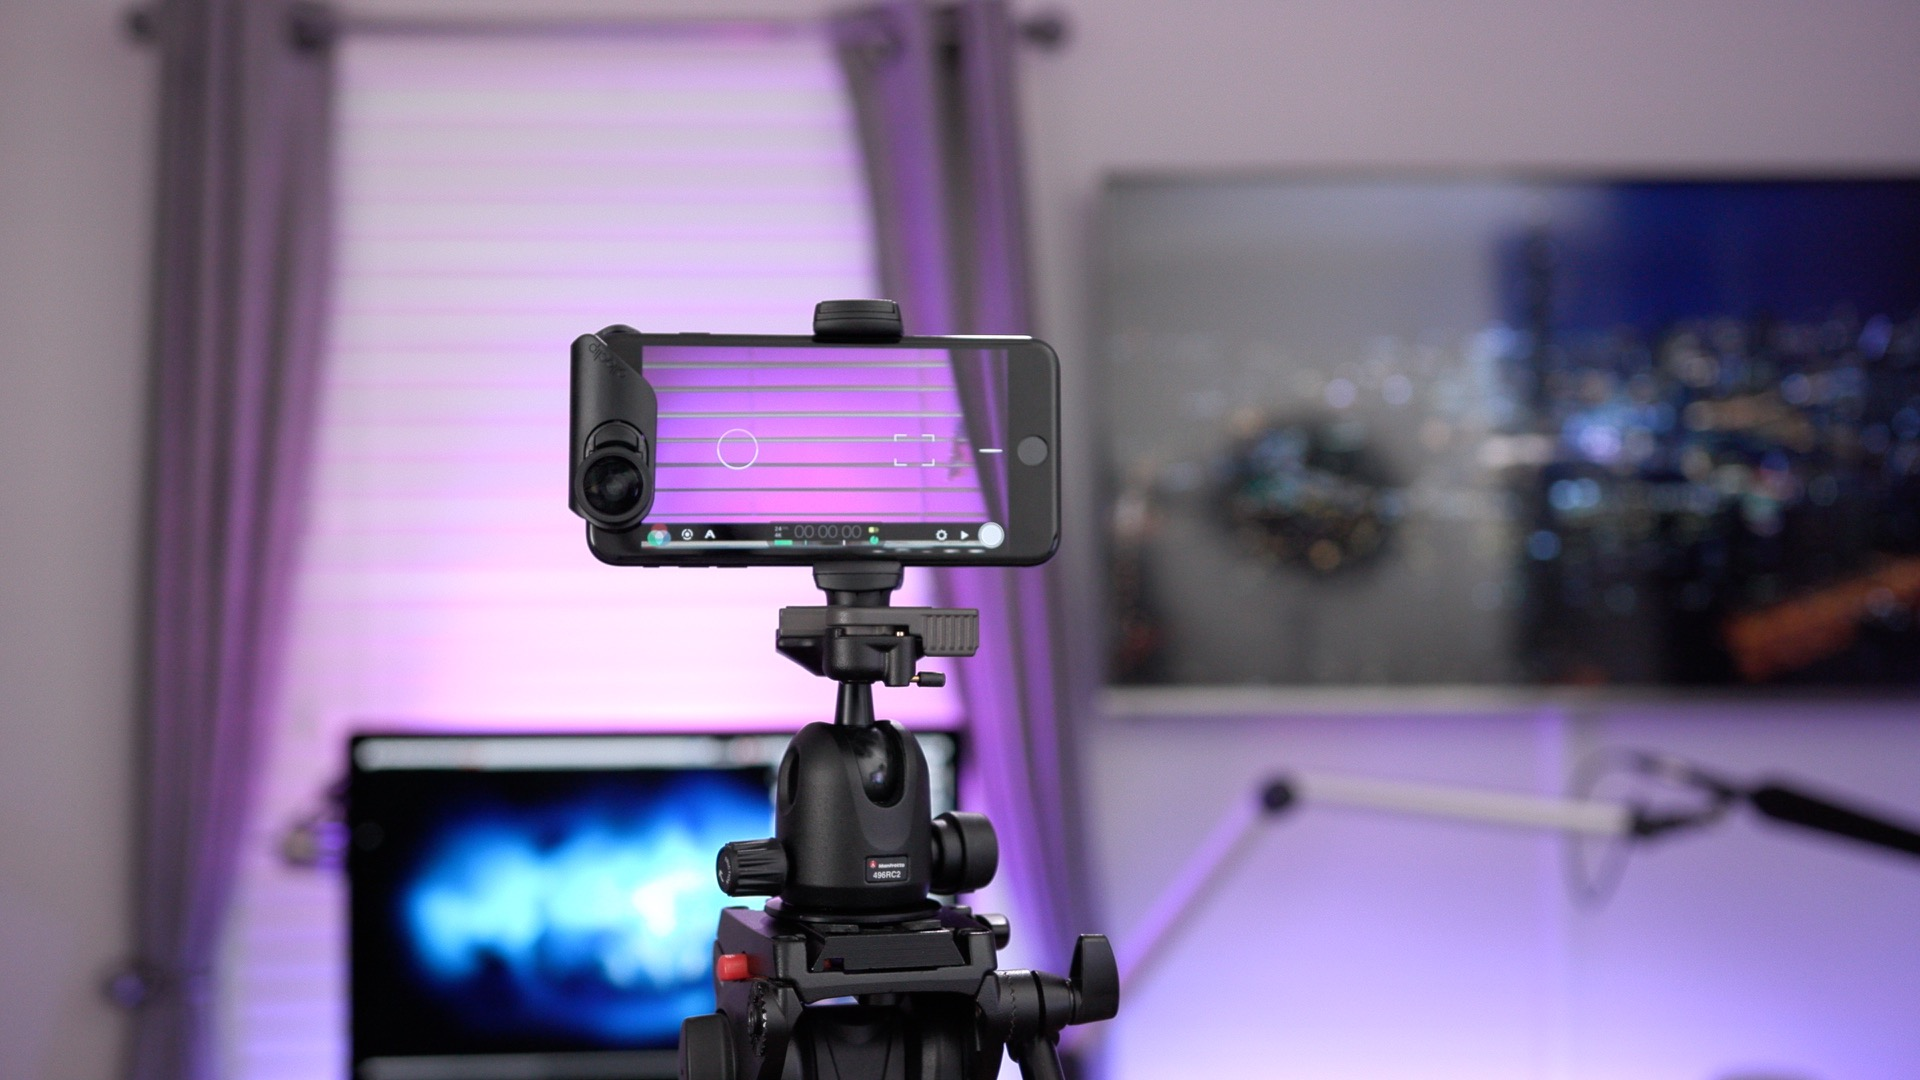 Hands-on: Olloclip Filmer's Kit provides valuable tools for